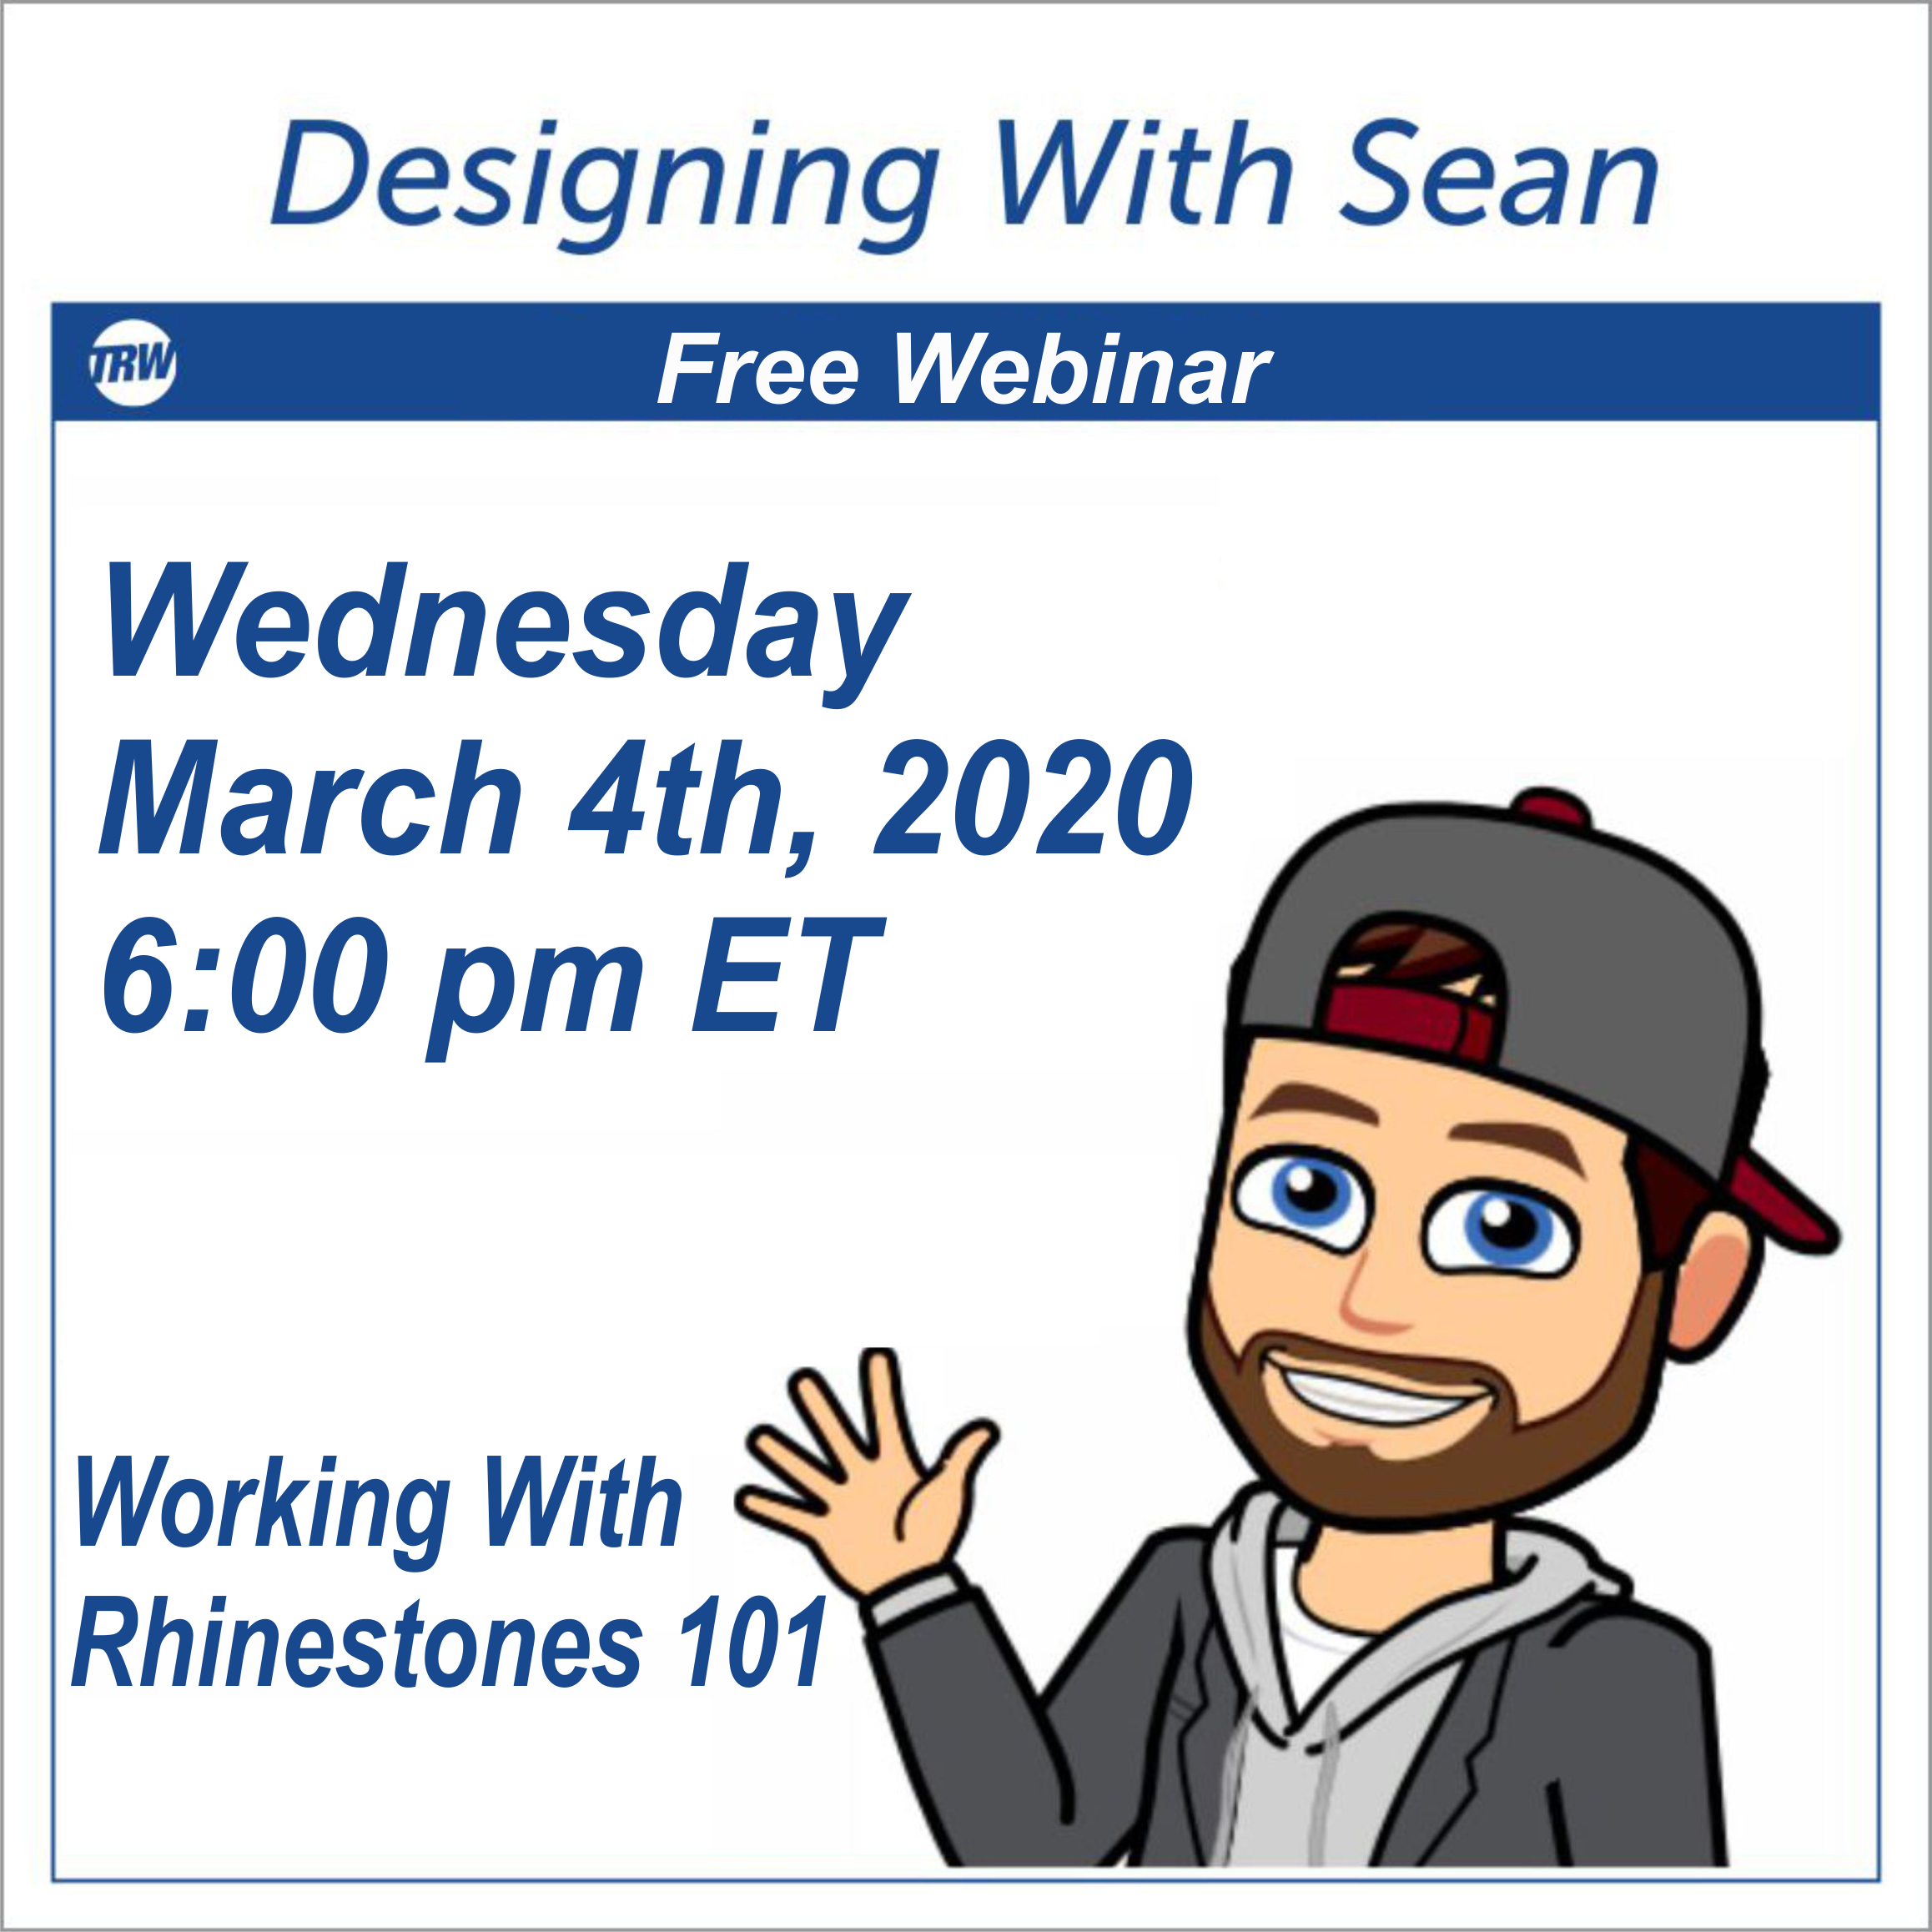 Designing with Sean | Working with Rhinestones 101 - March 4th 2020